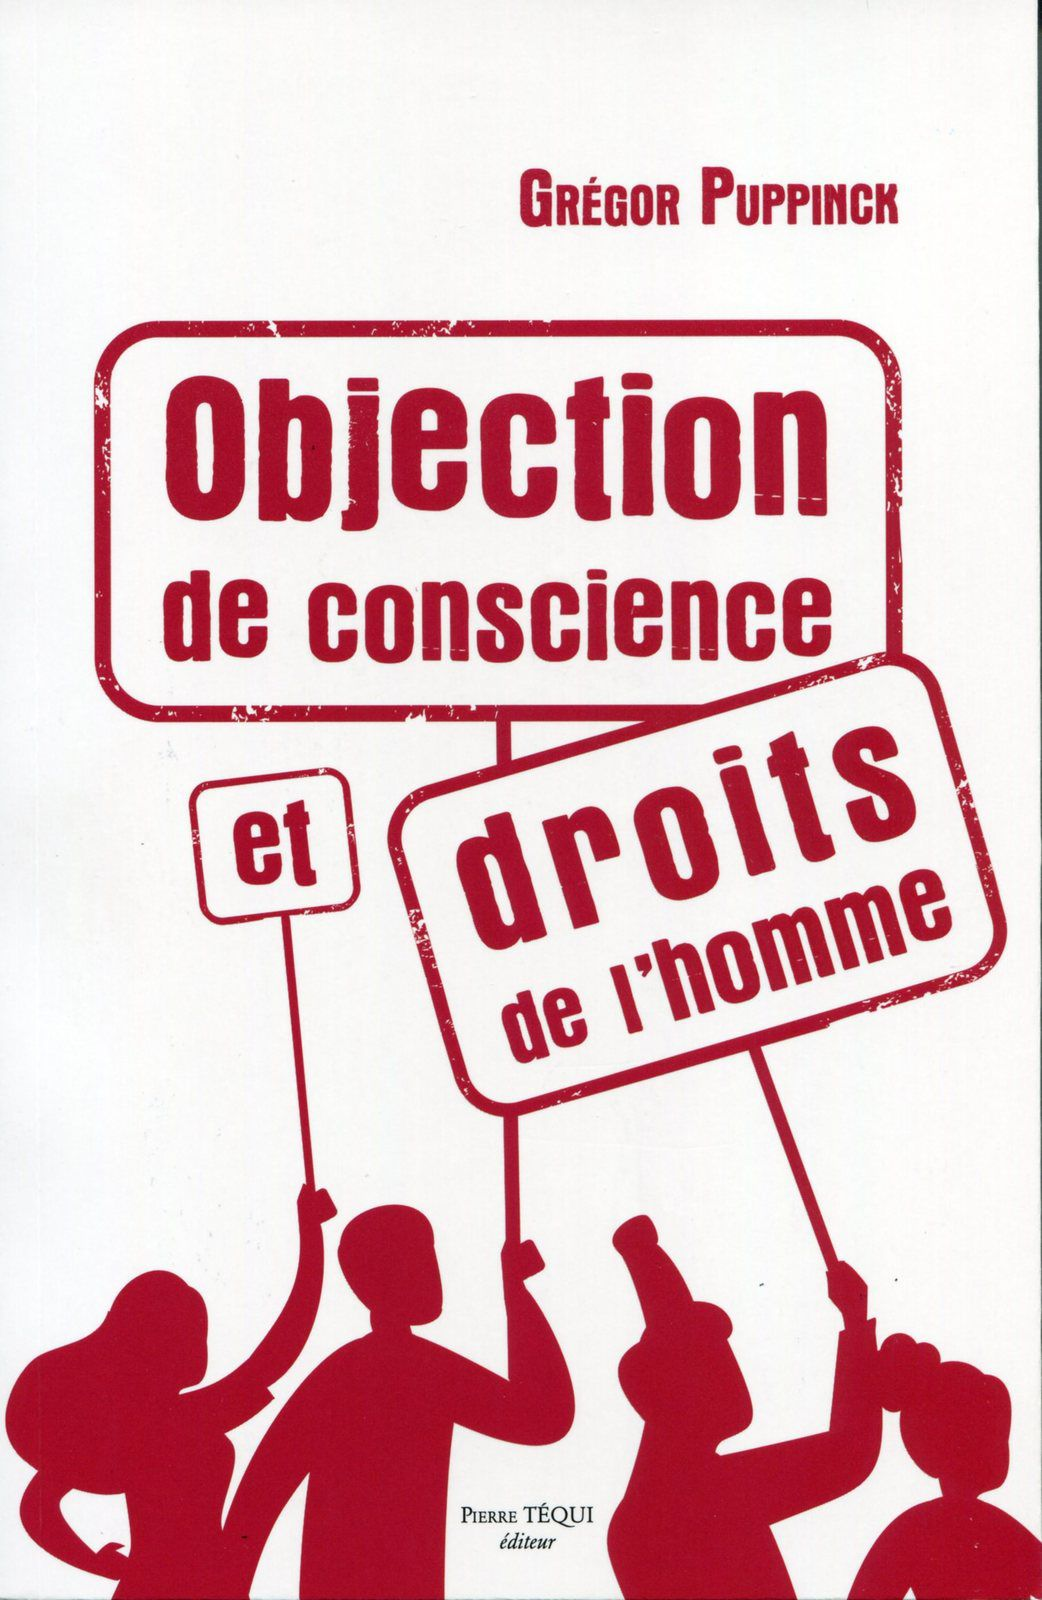 objection de conscience et droits de l'homme